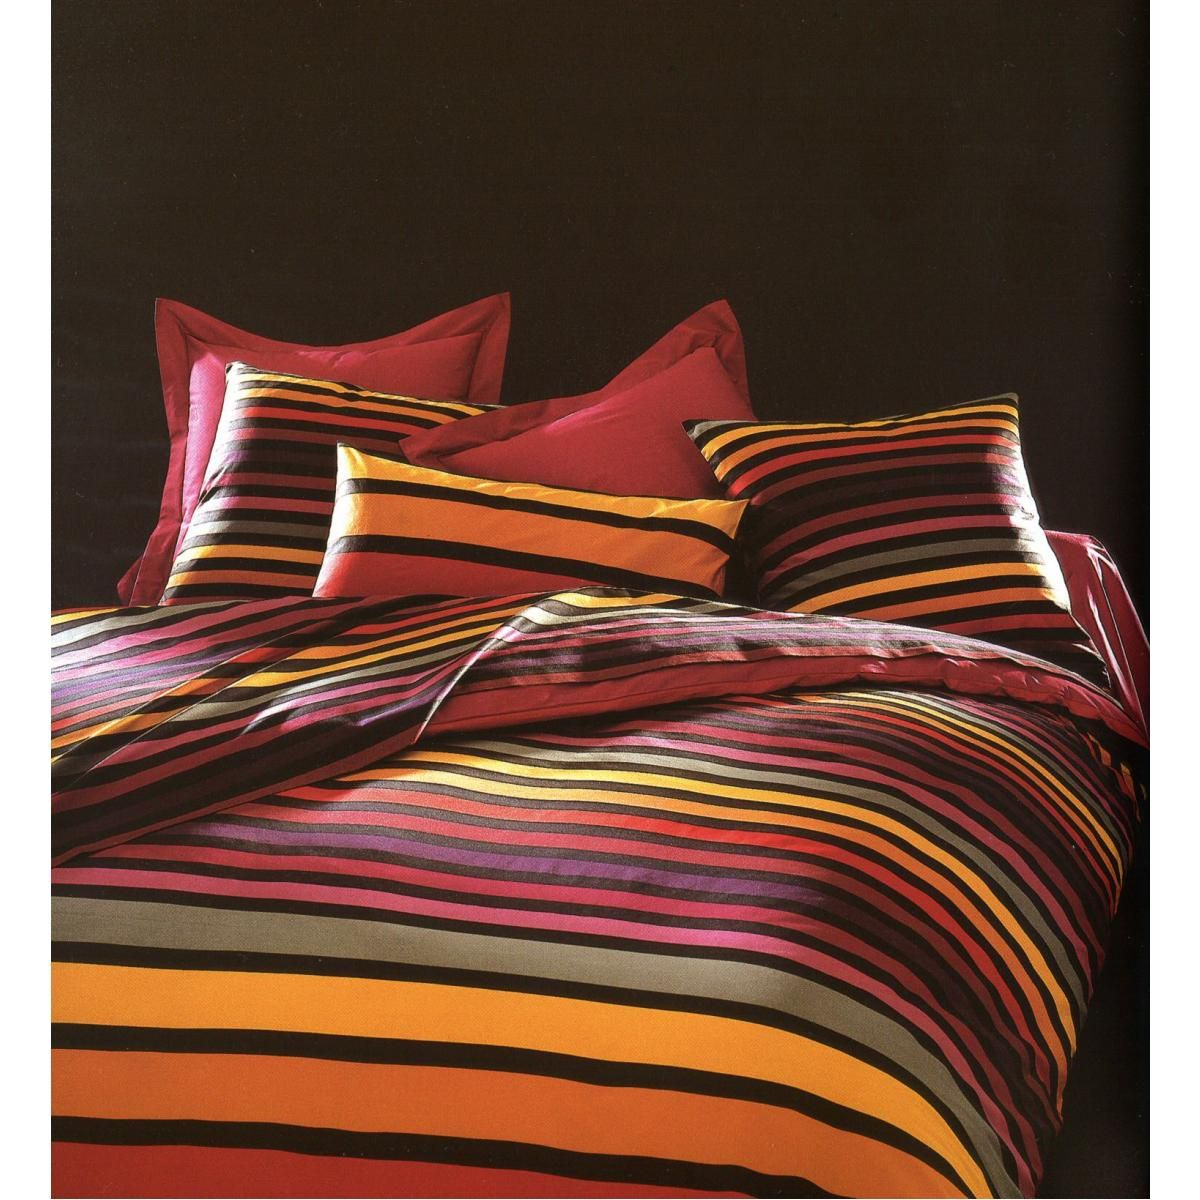 Housse de couette sonia rykiel awesome achat with housse - Housse de couette sonia rykiel pas cher ...